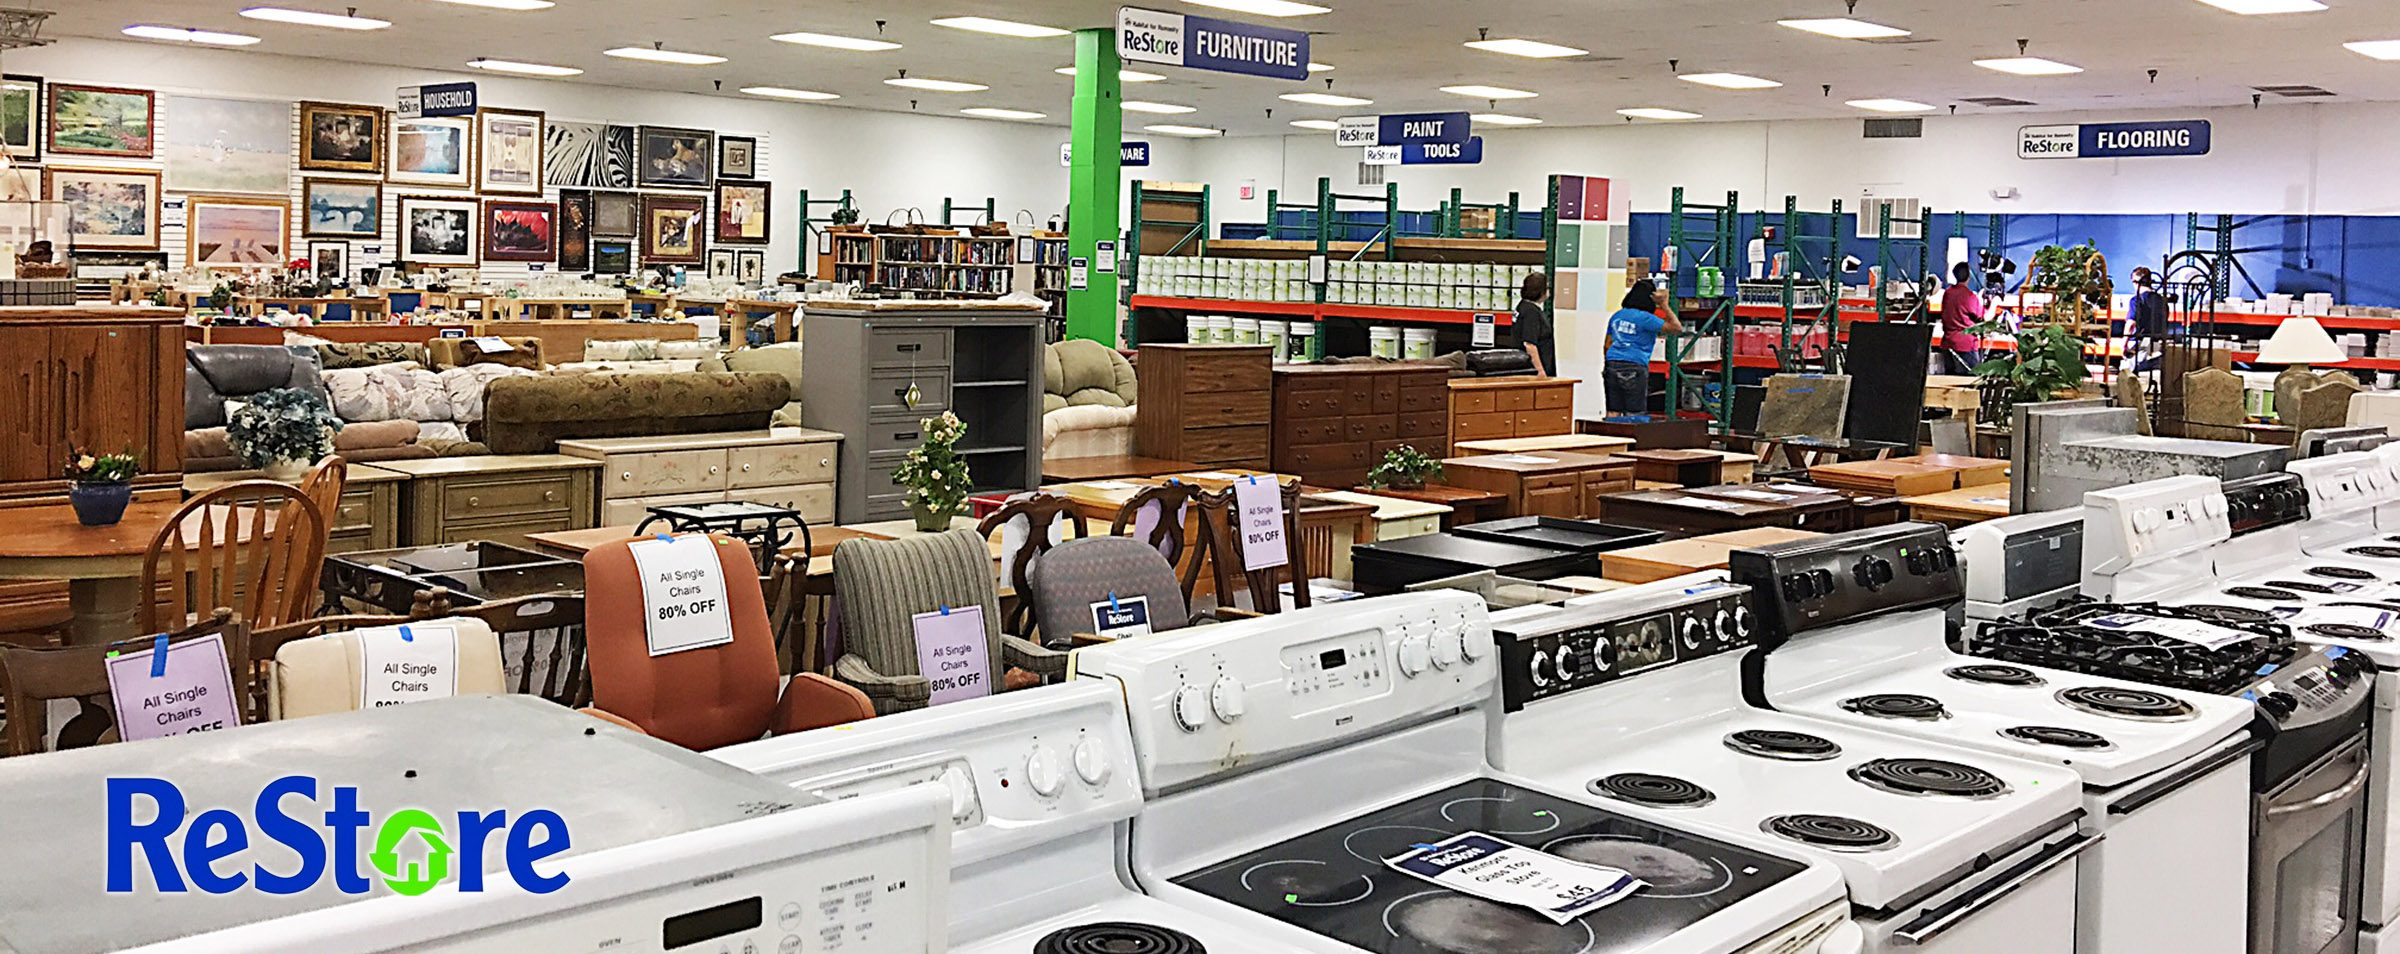 Habitat restore habitat for humanity hillsborough county fl for Habitat outlet